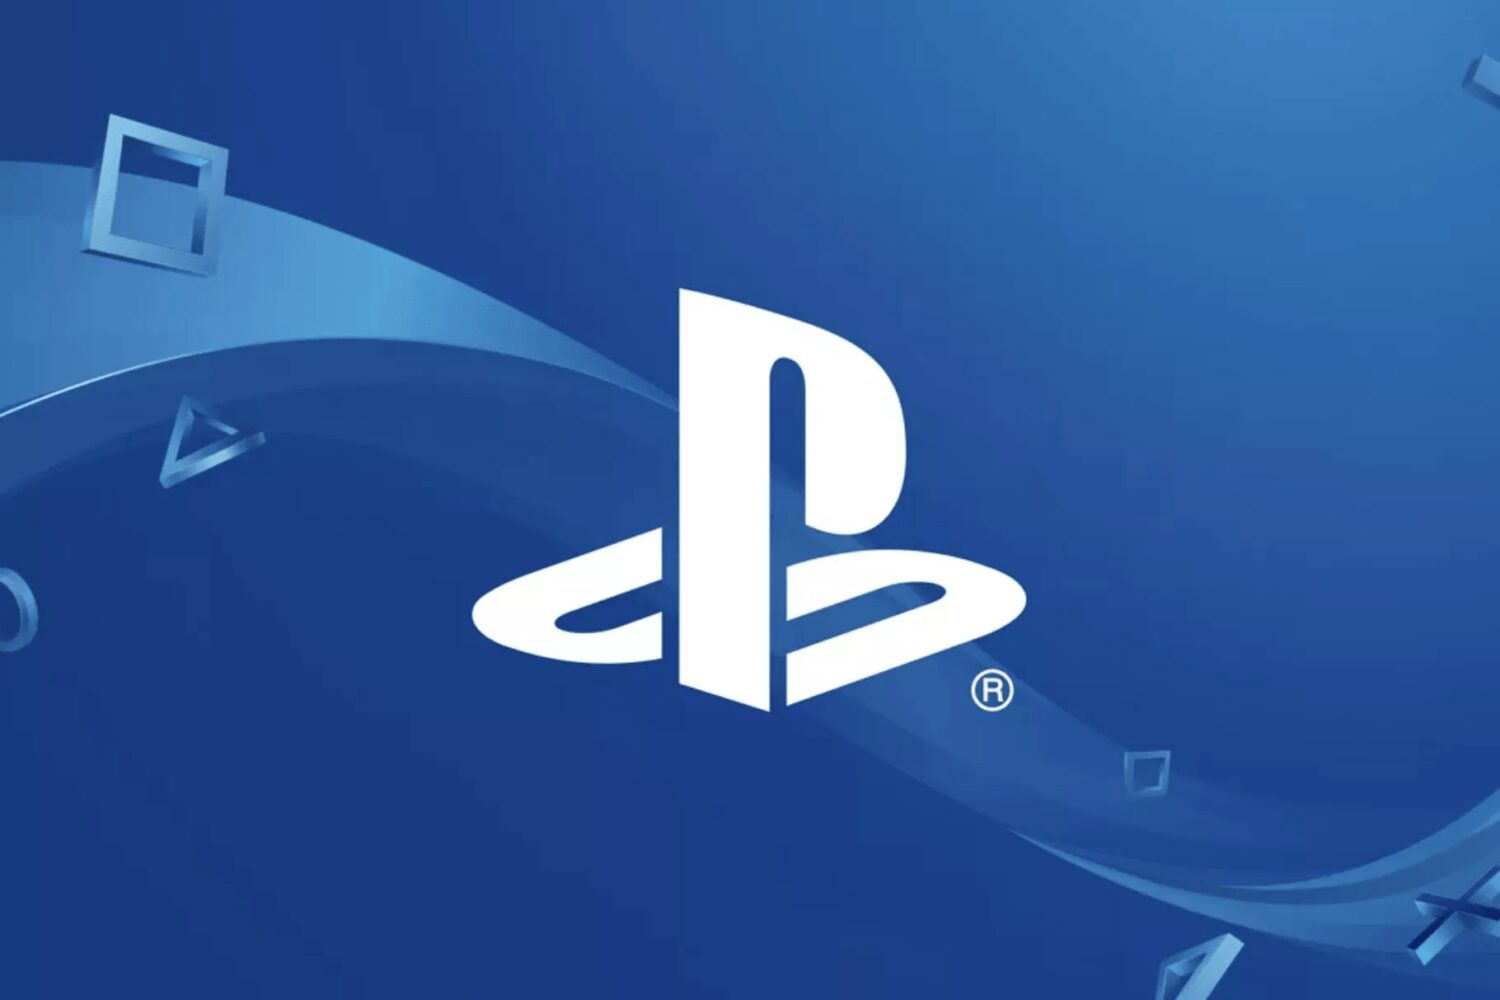 sony e3 playstation absent